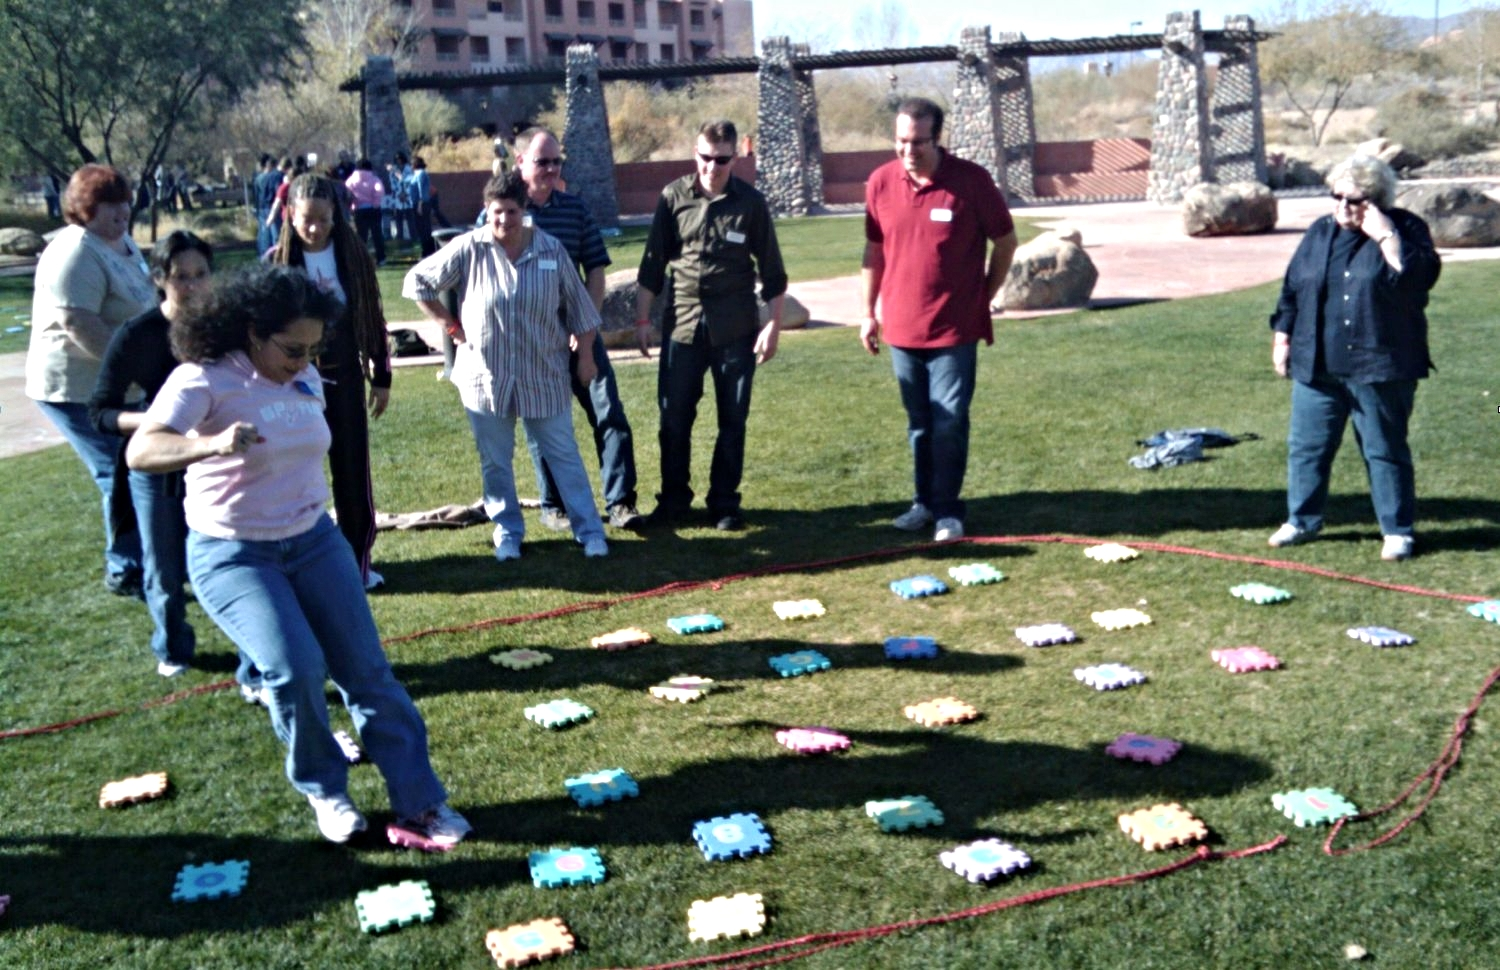 Team problem-solving exercises, creative thinking activities and collaborative group challenges